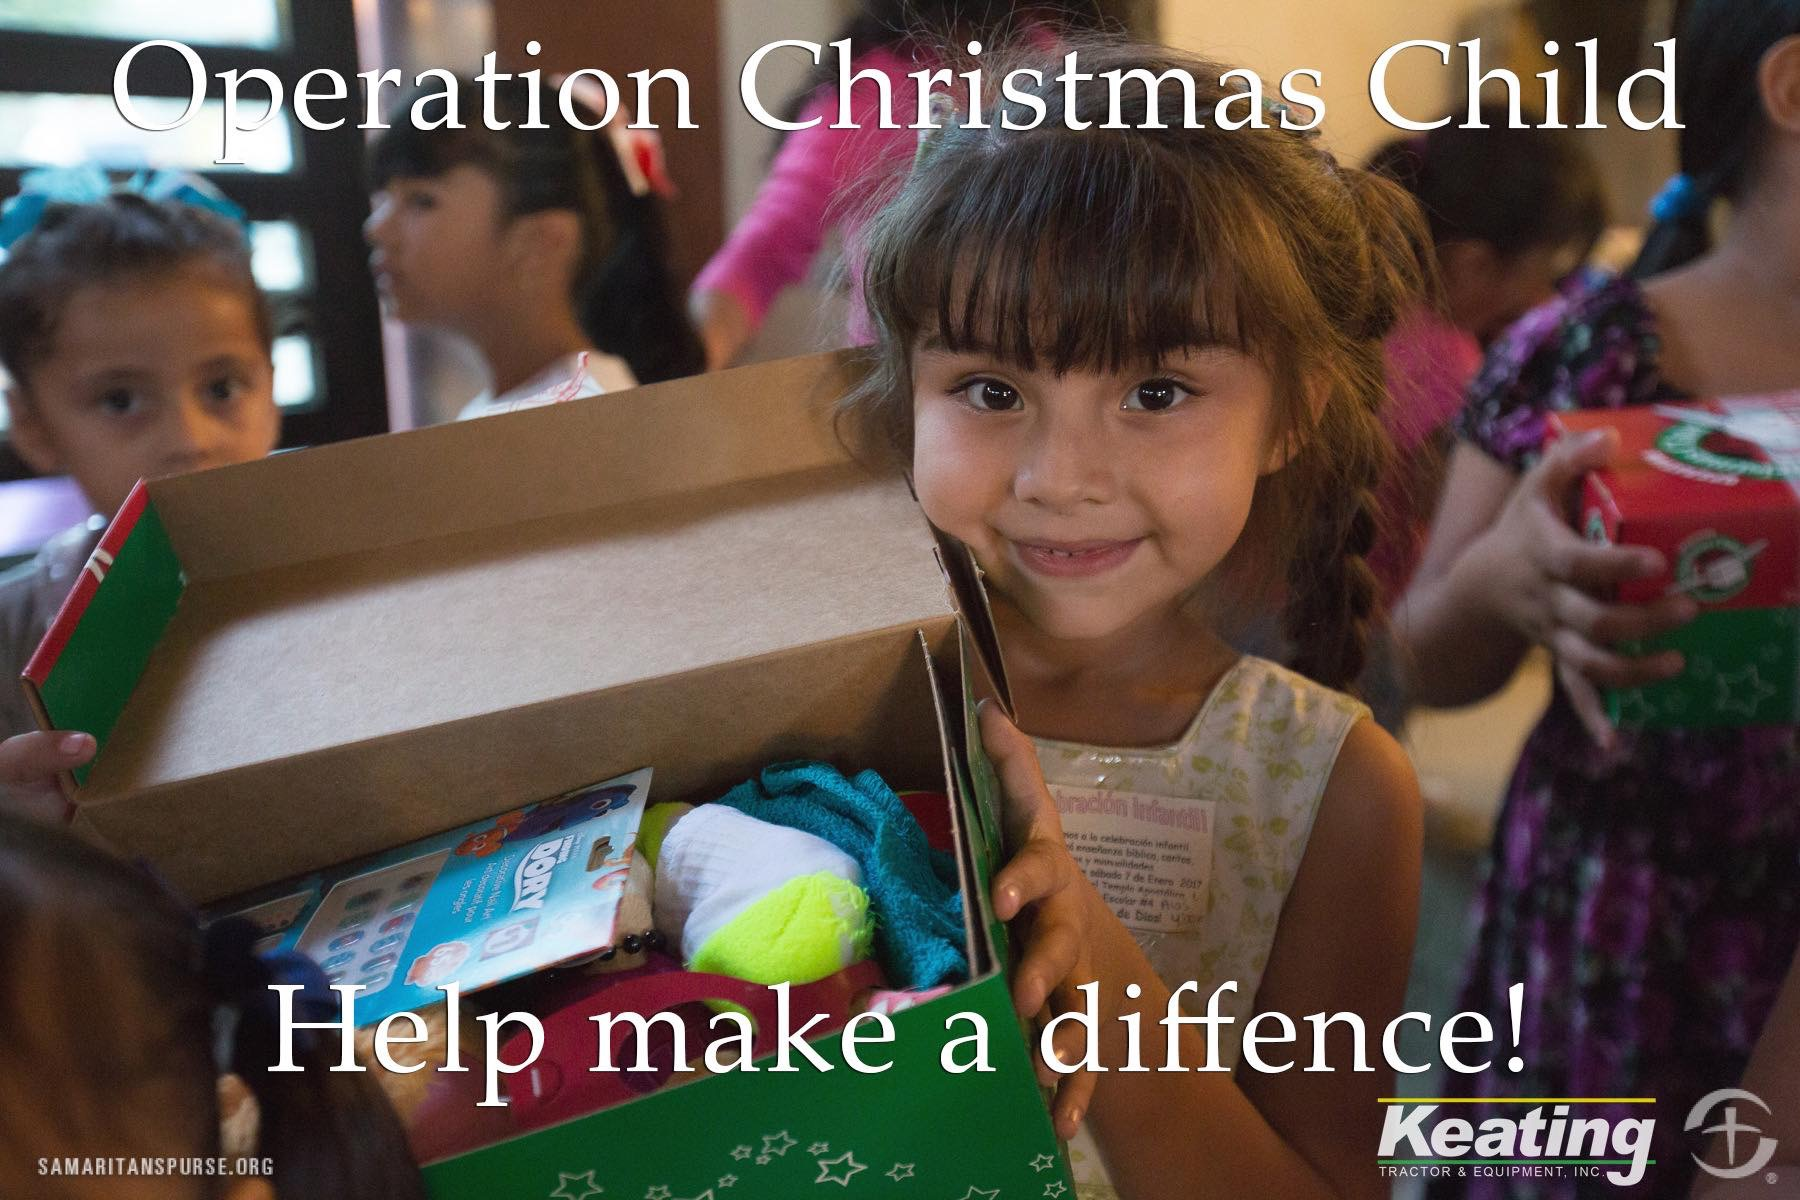 Keating Tractor, KSCB/The Legend,and Conestoga Partner for Operation Christmas Child